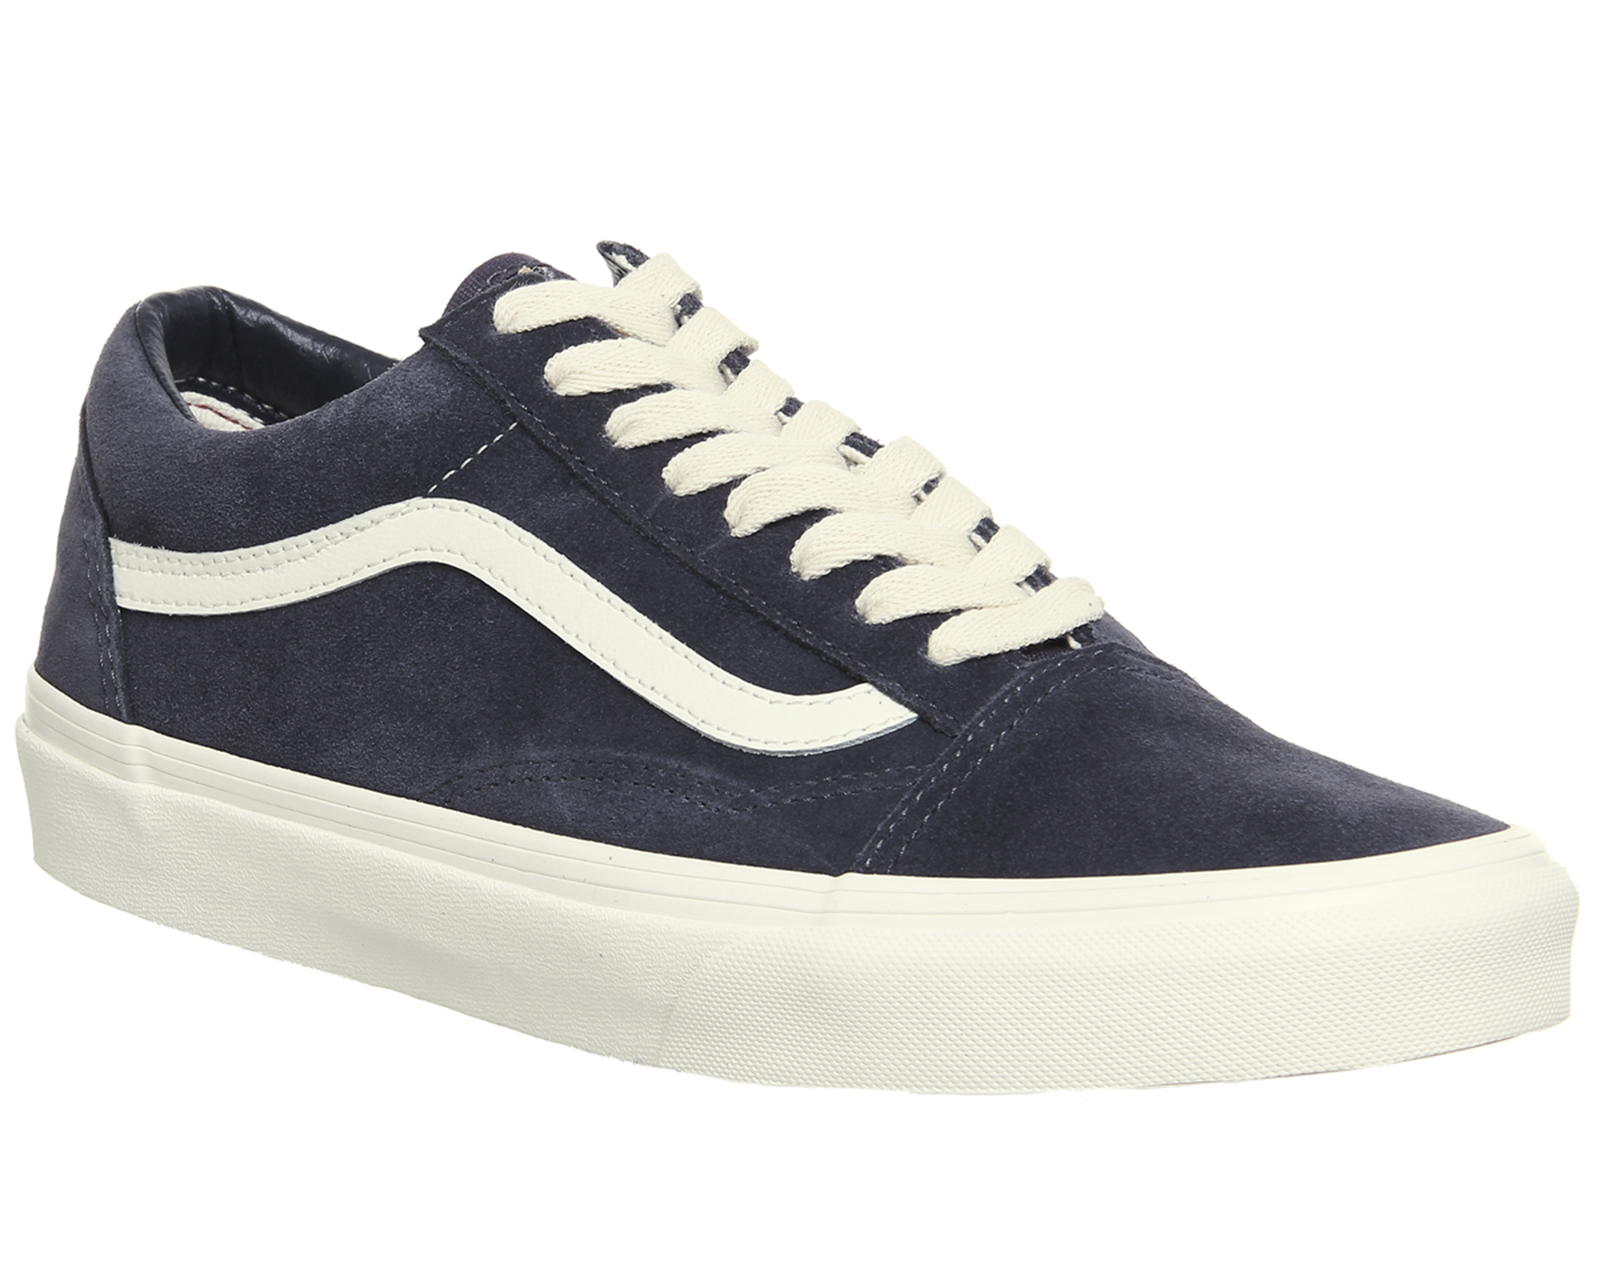 Details about Mens Vans Old Skool Trainers NAVY BLUE MARSHMALLOW Trainers Shoes